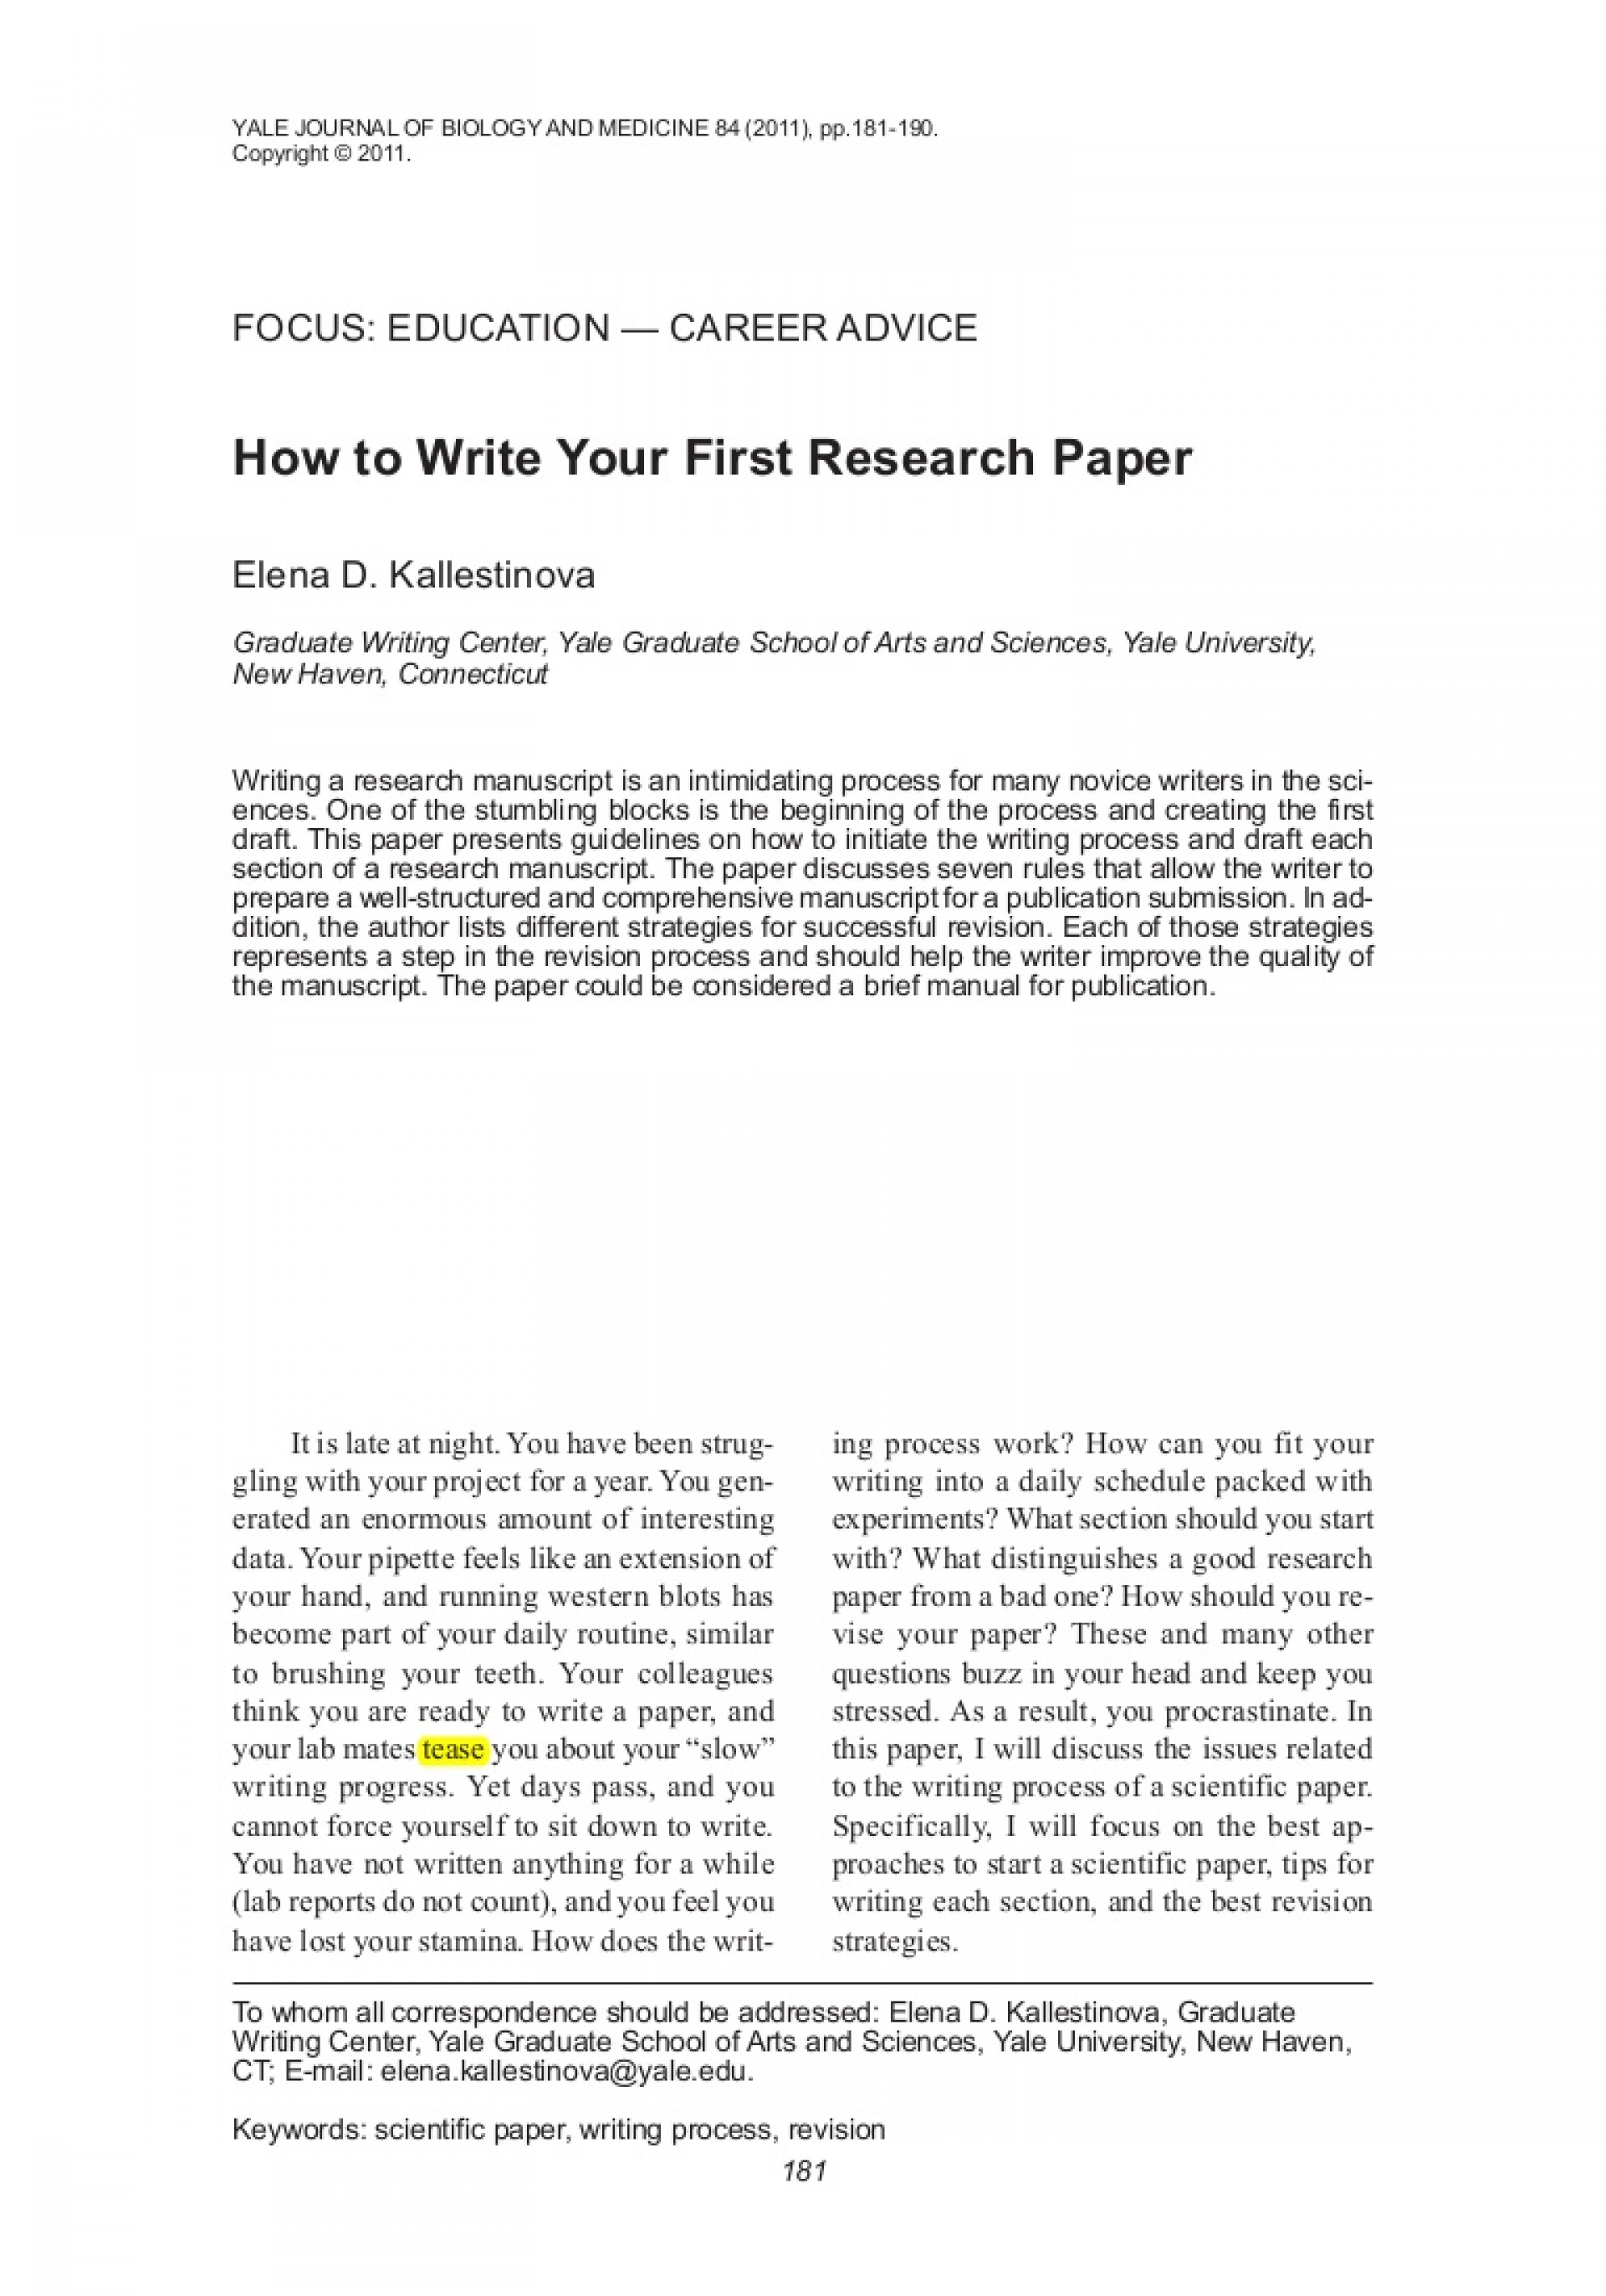 013 How To Write Research Papers Paper Howtowriteyourfirstresearchpaper Lva1 App6891 Thumbnail Best A - Pdf (2015) Conclusion An Introduction And 1920